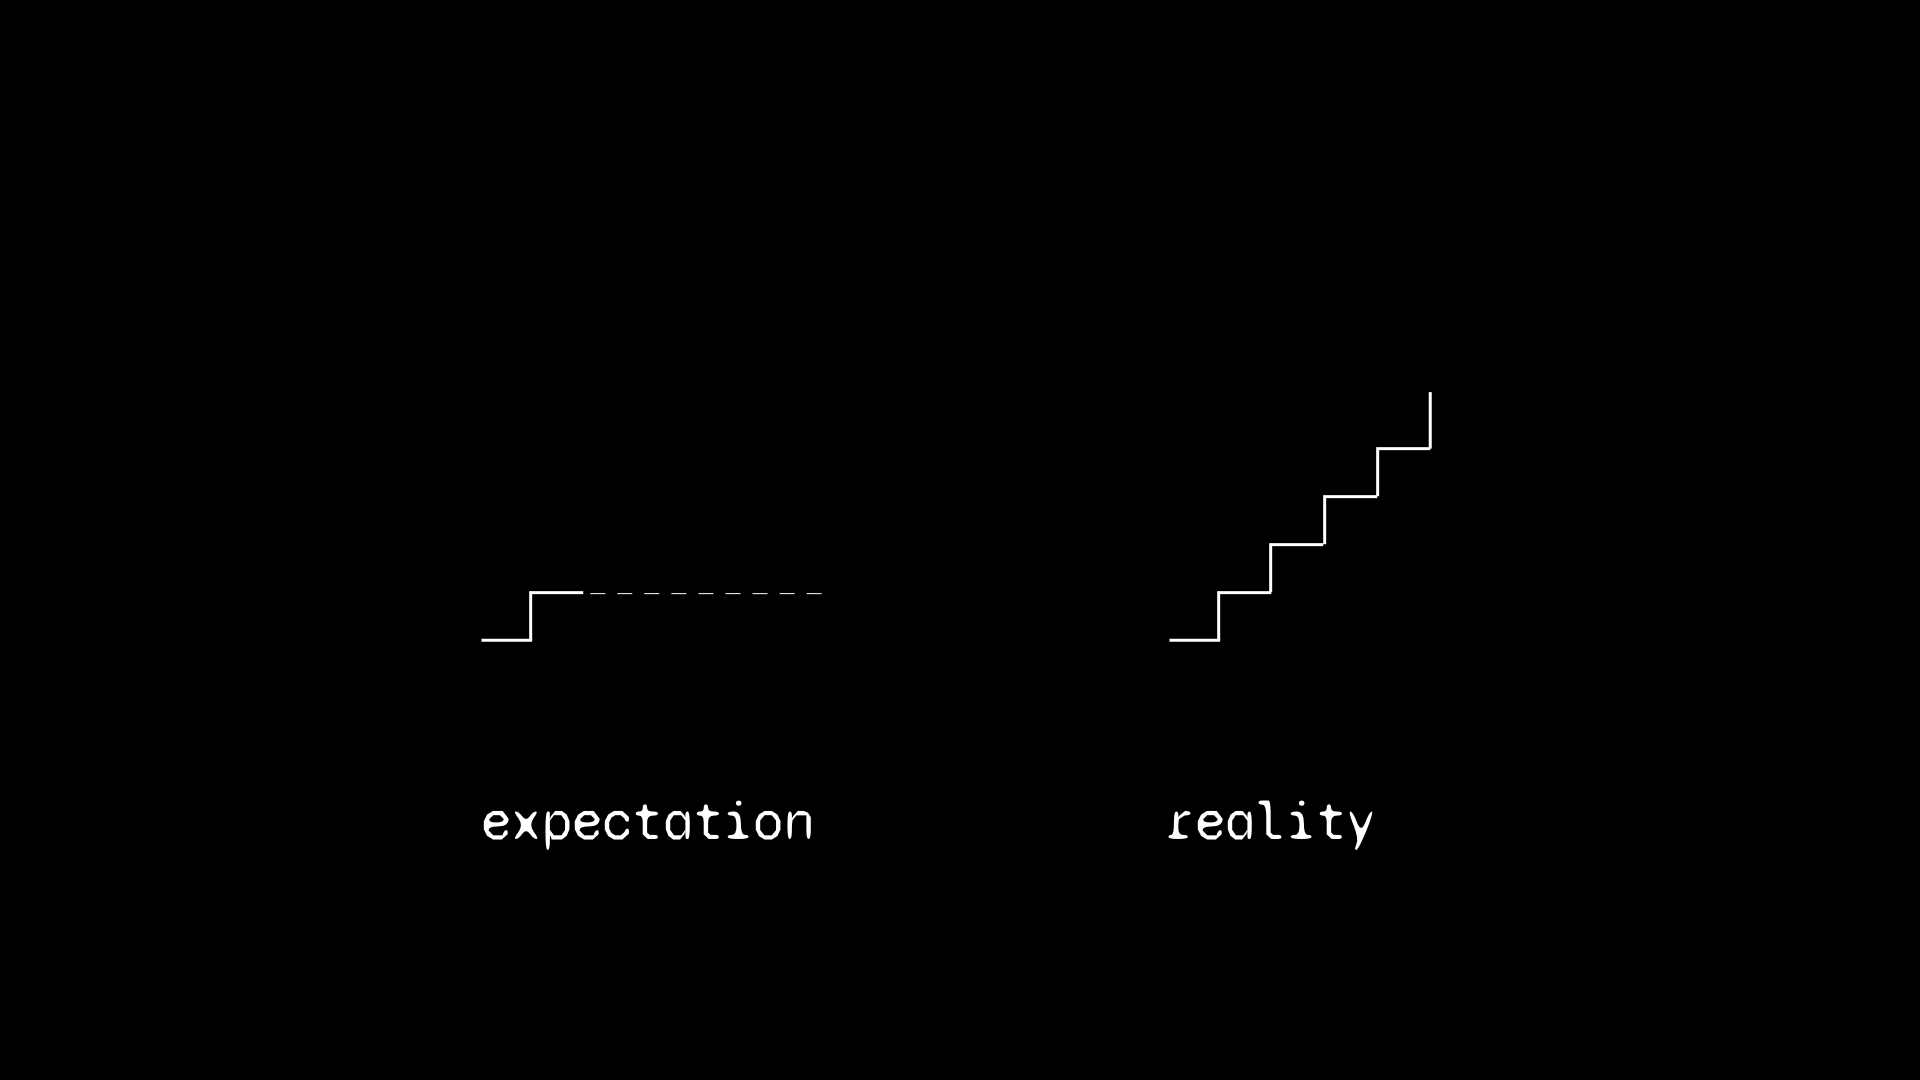 expectation of habits vs their reality